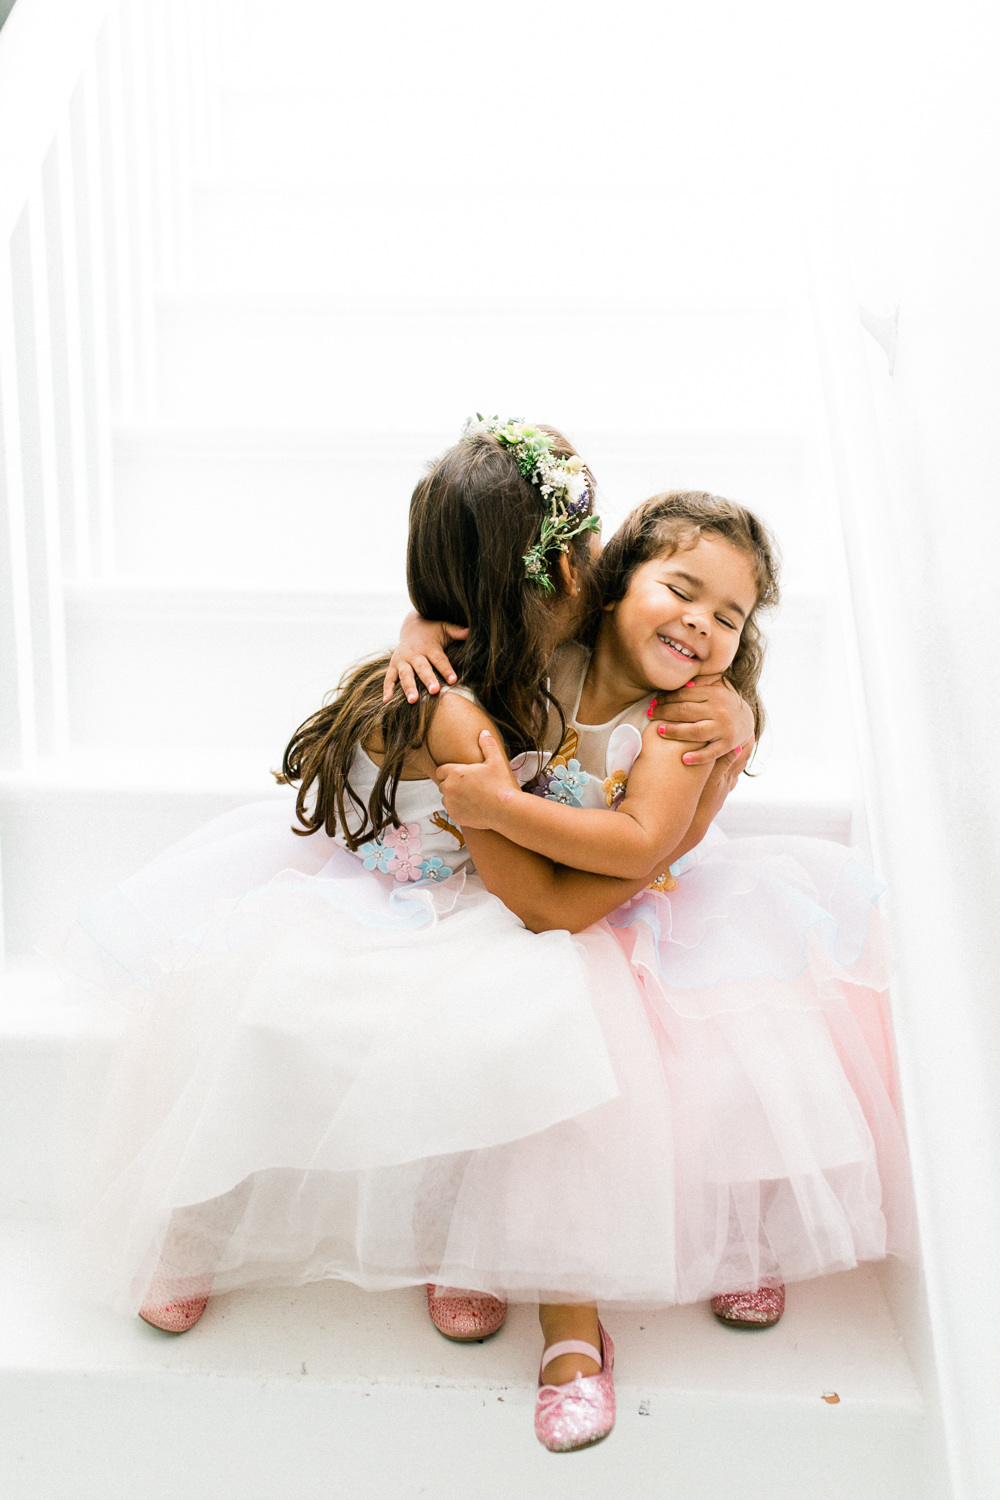 two young flower girls in tulle dresses and sequined slippers sit on a staircase and hug